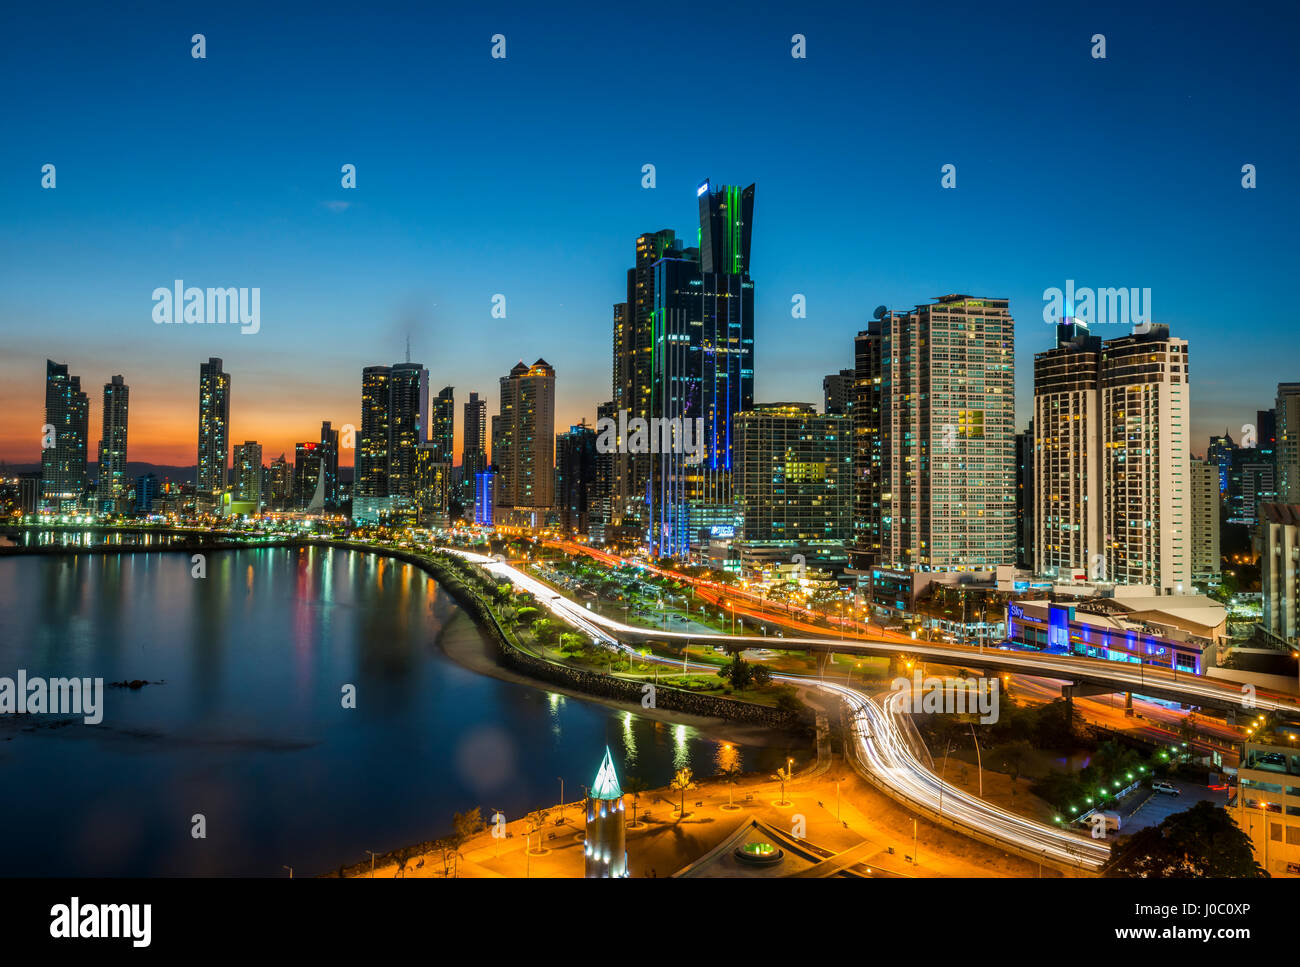 The skyline of Panama City at night, Panama City, Panama, Central America - Stock Image